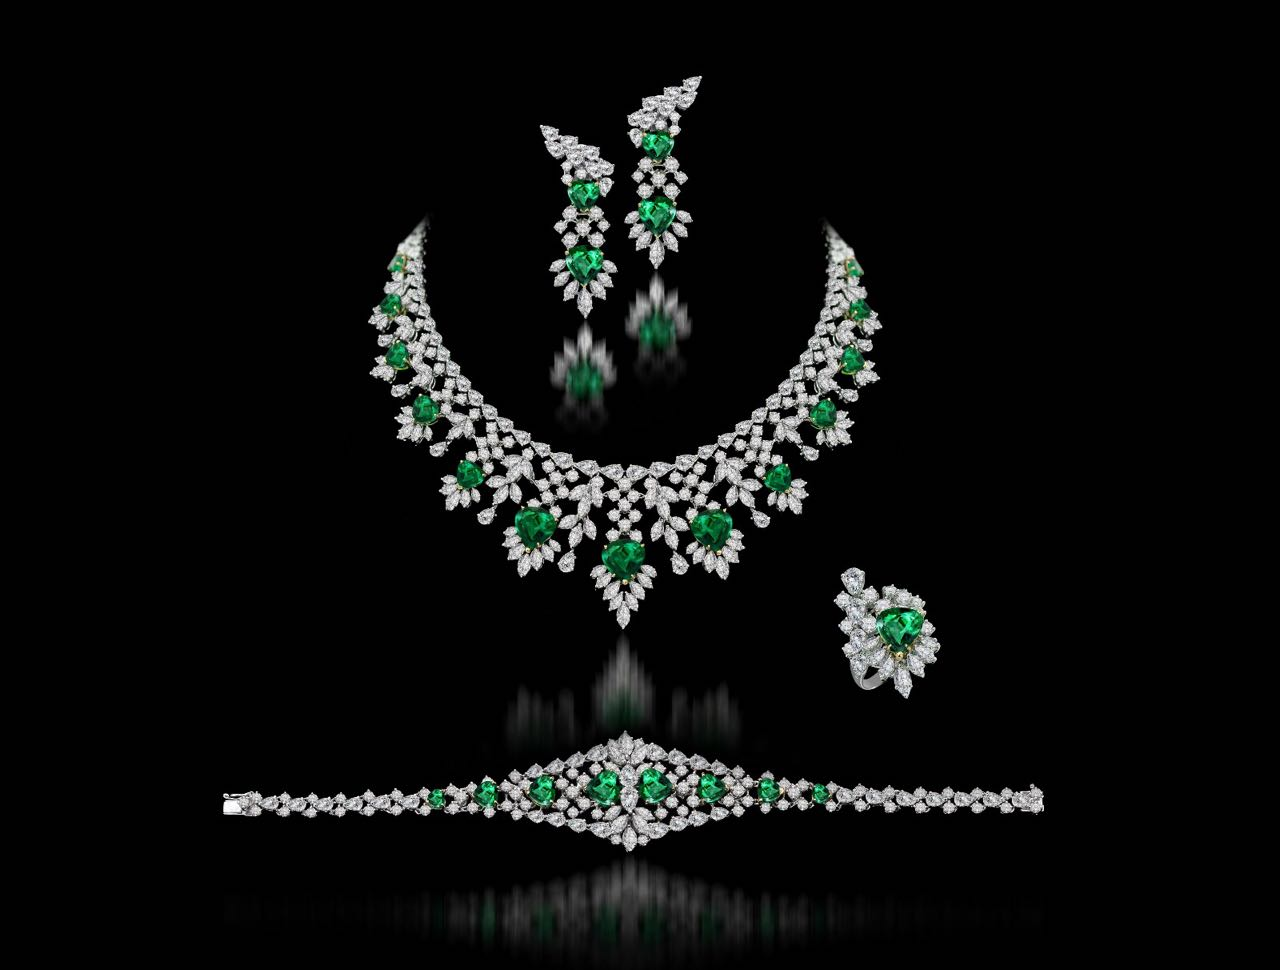 Diamond and emerald necklace, earrings, bracelet and ring set